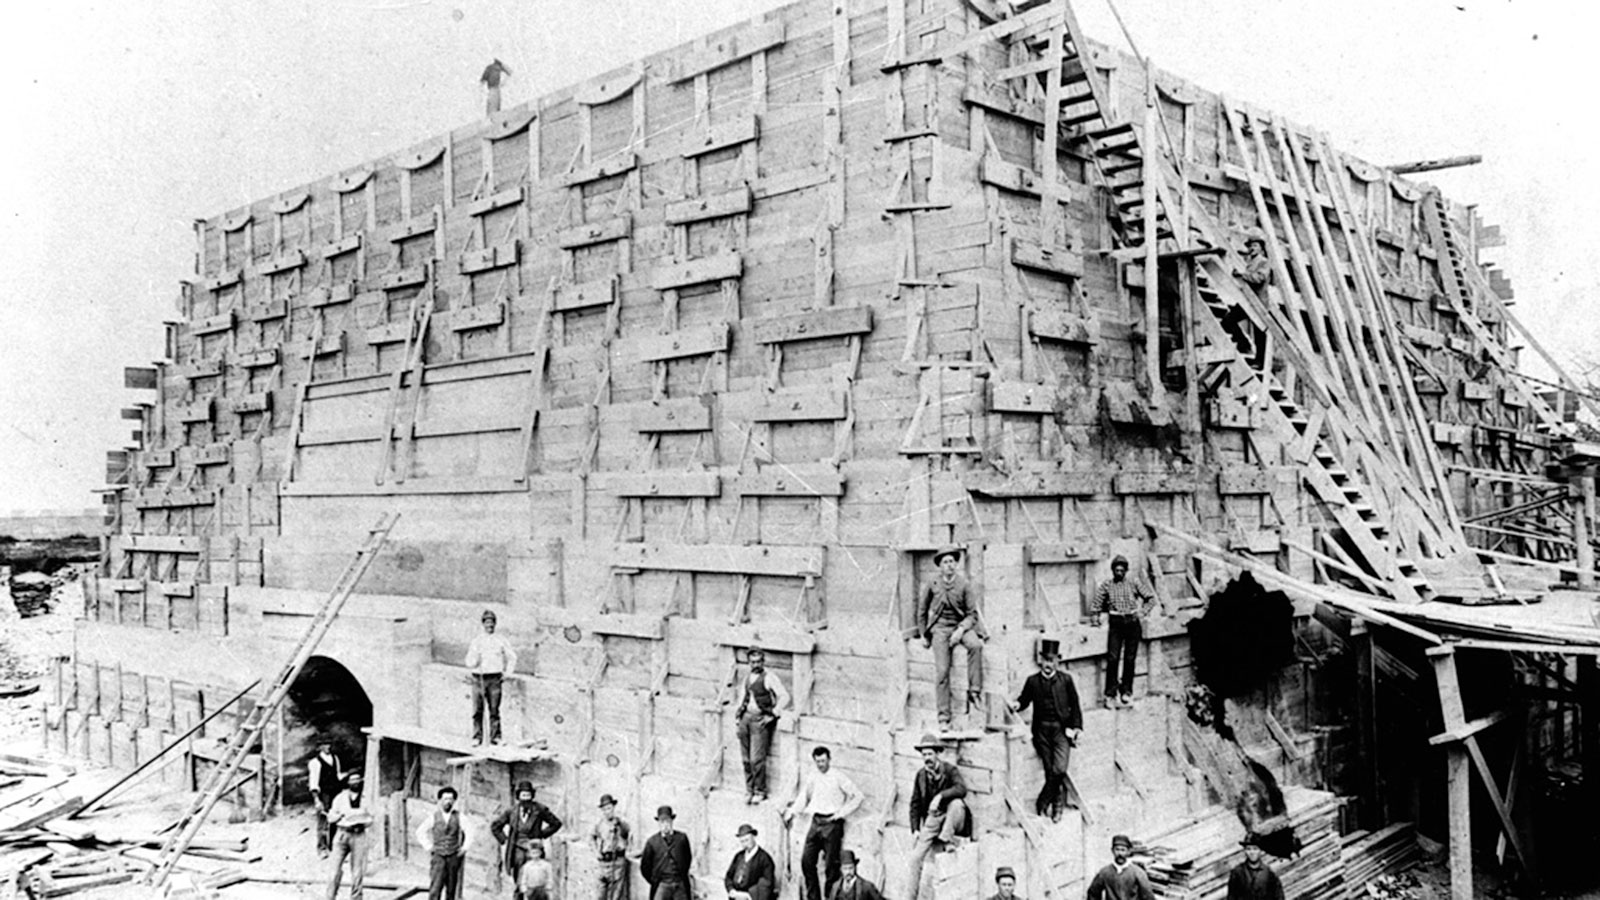 pedestal for the Statue of Liberty under construction